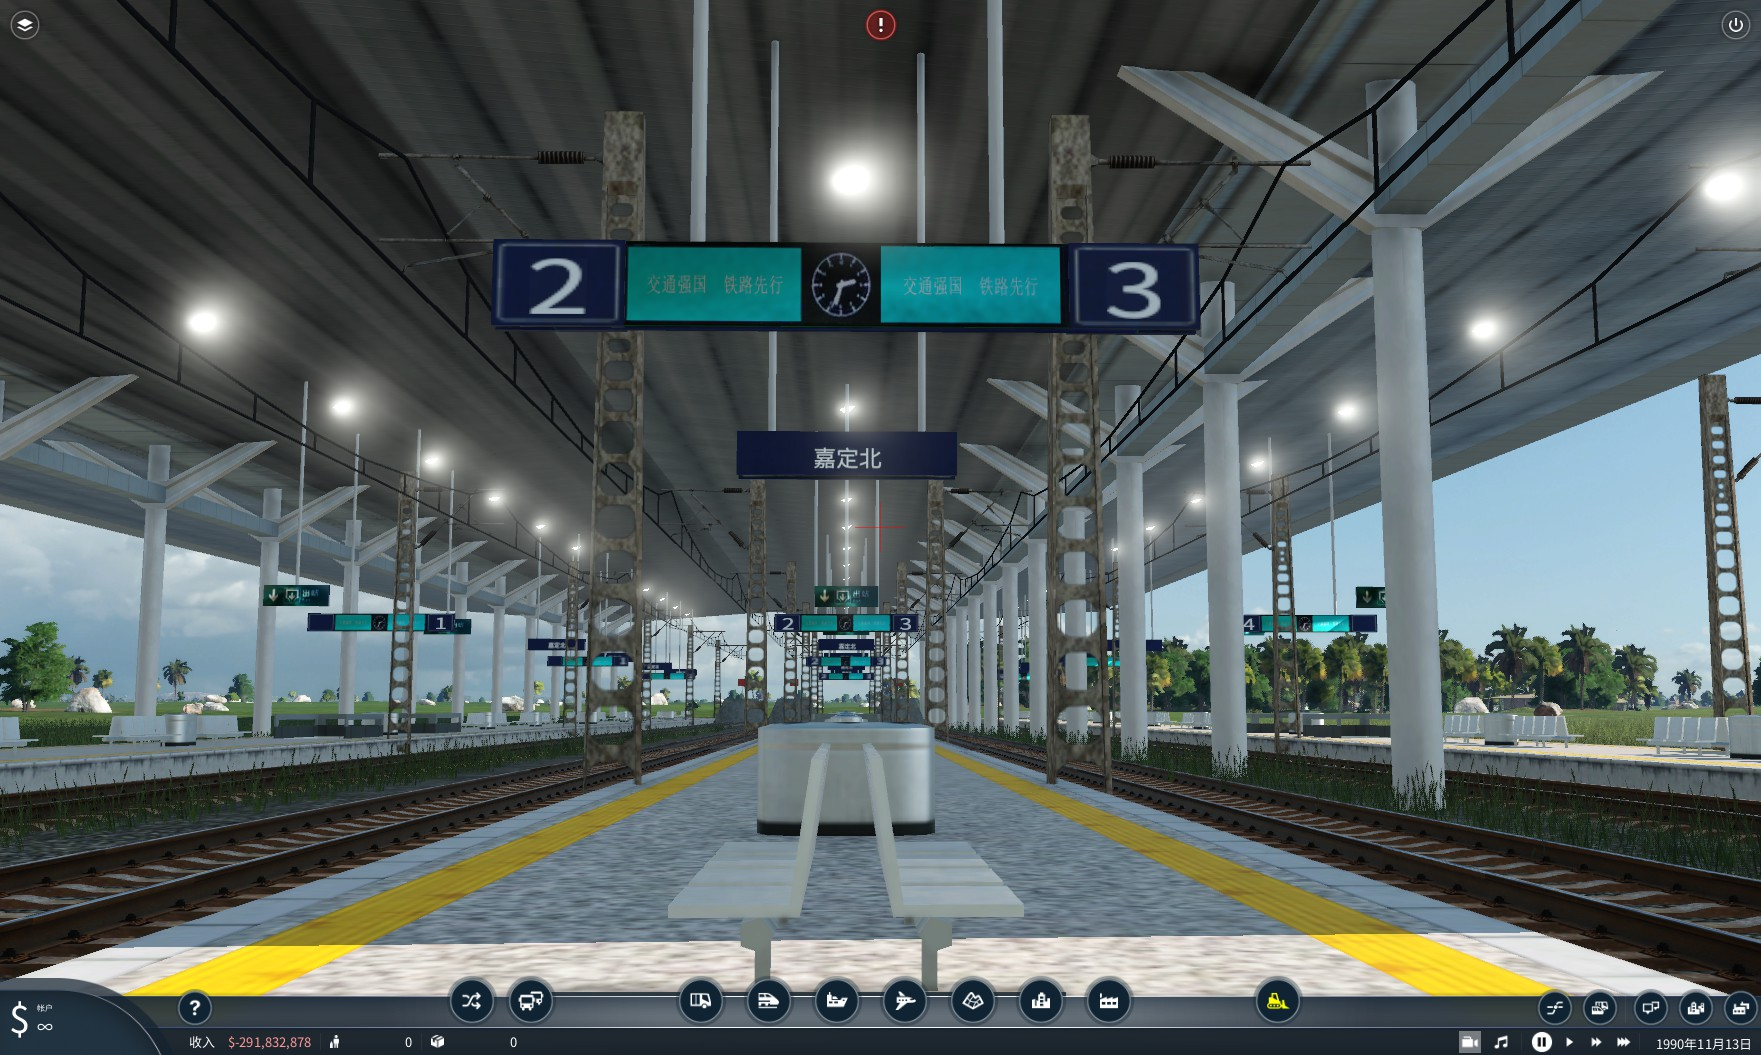 Transport Fever 2 - CR-Like Style Train Station Plus